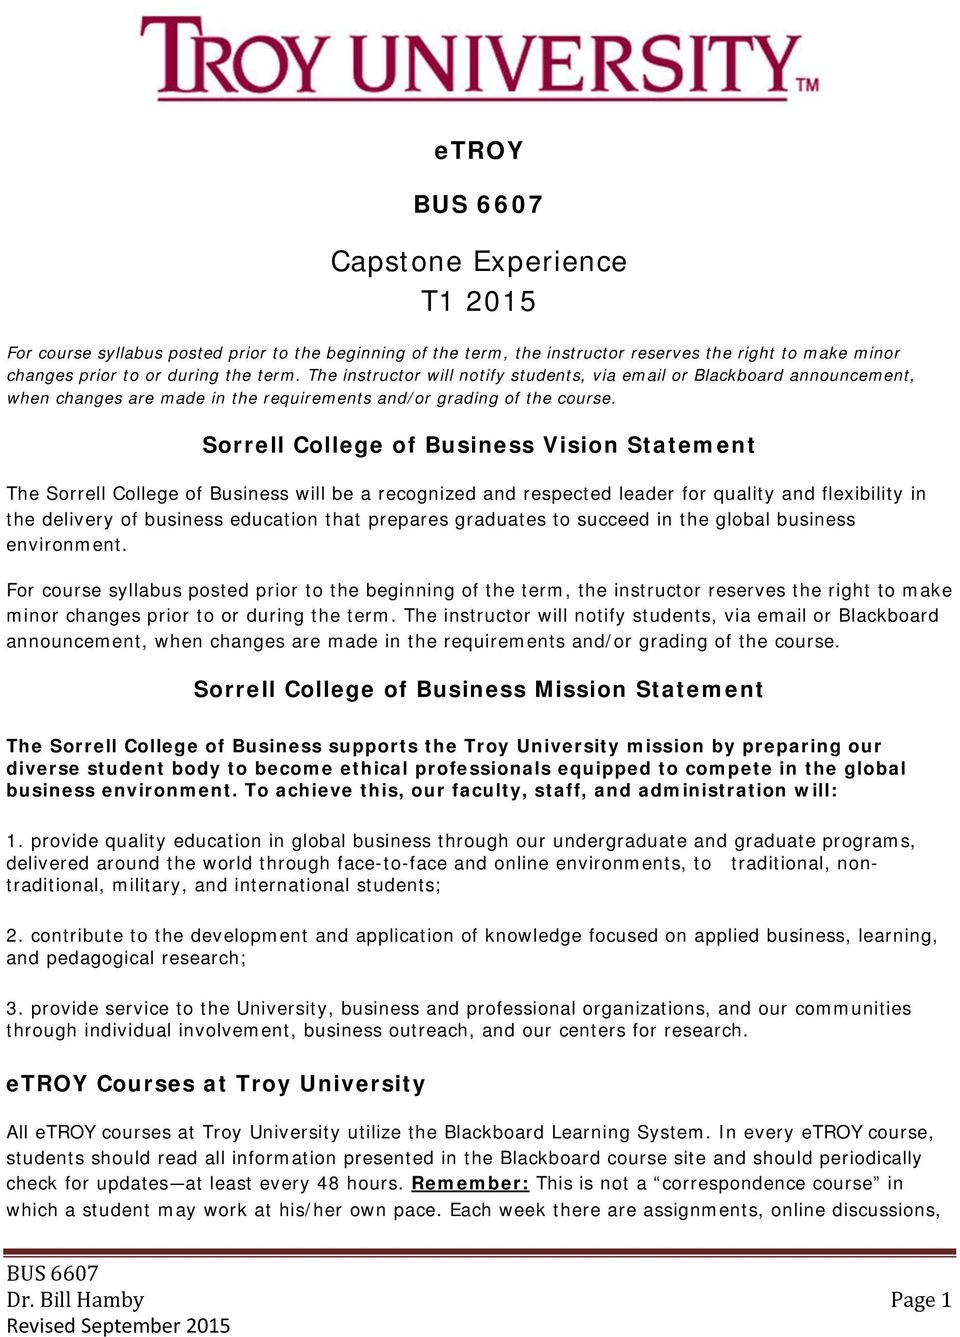 Sorrell College of Business Vision Statement The Sorrell College of Business will be a recognized and respected leader for quality and flexibility in the delivery of business education that prepares